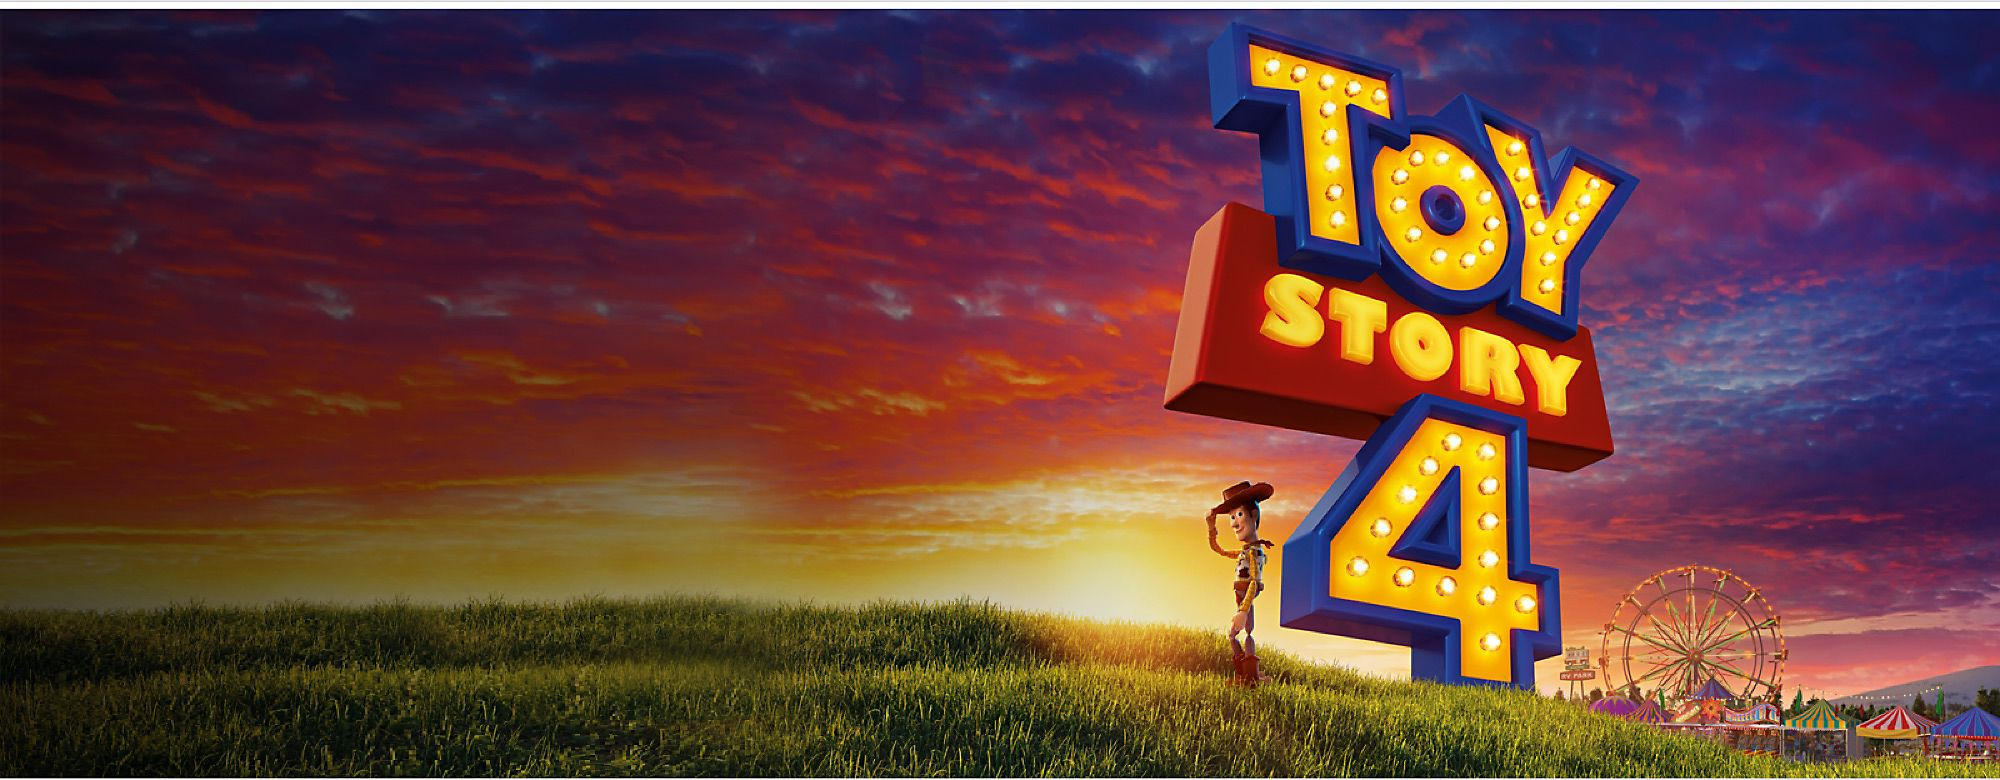 Toy Story 4 When a new toy called 'Forky' joins Woody and the gang, a road trip alongside old and new friends reveals how big the world can be for a toy. Join the adventure and explore our collection of toys, stationery and more. Releases June 2019